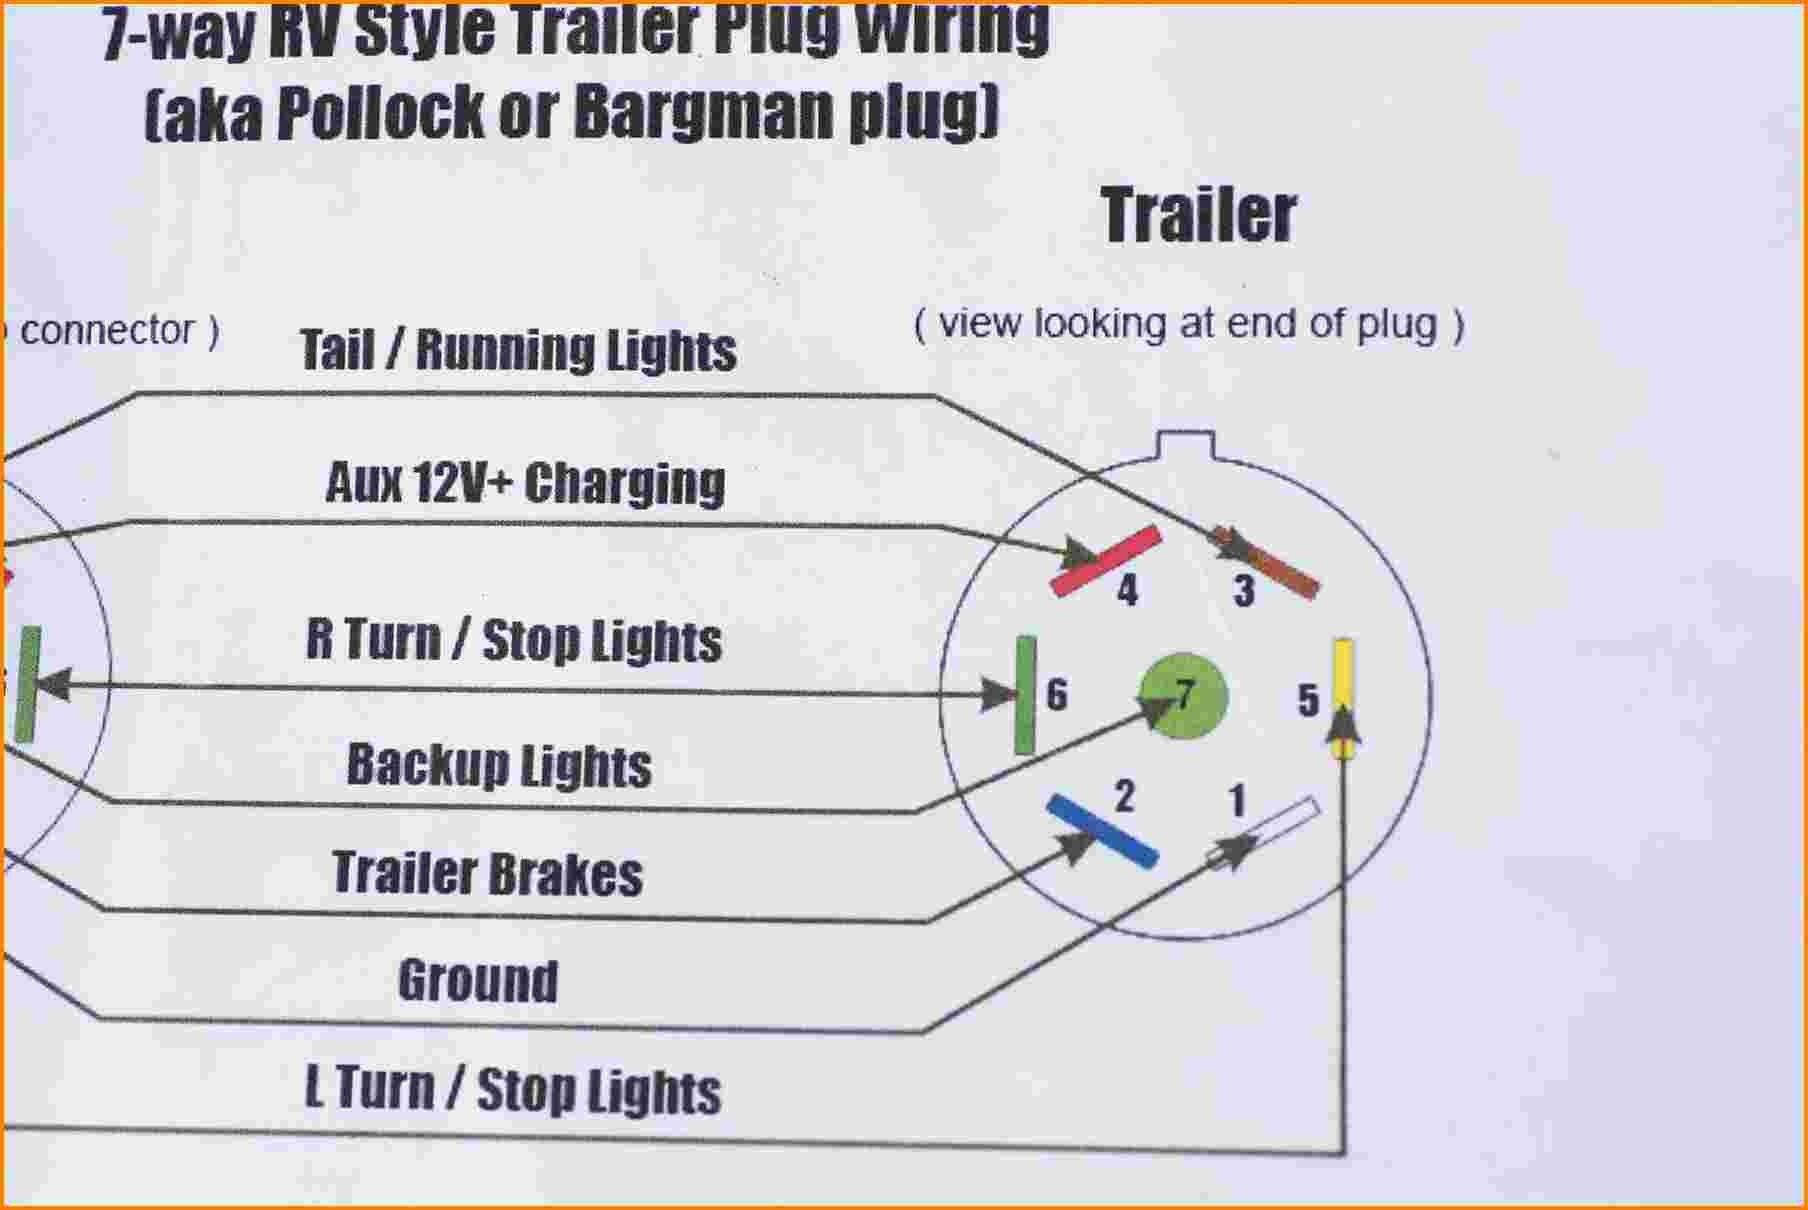 Best Of Wiring Diagram 7 Pin Trailer Plug Toyota Diagrams Digramssample Diagramimages Check Trailer Wiring Diagram Trailer Light Wiring Boat Trailer Lights